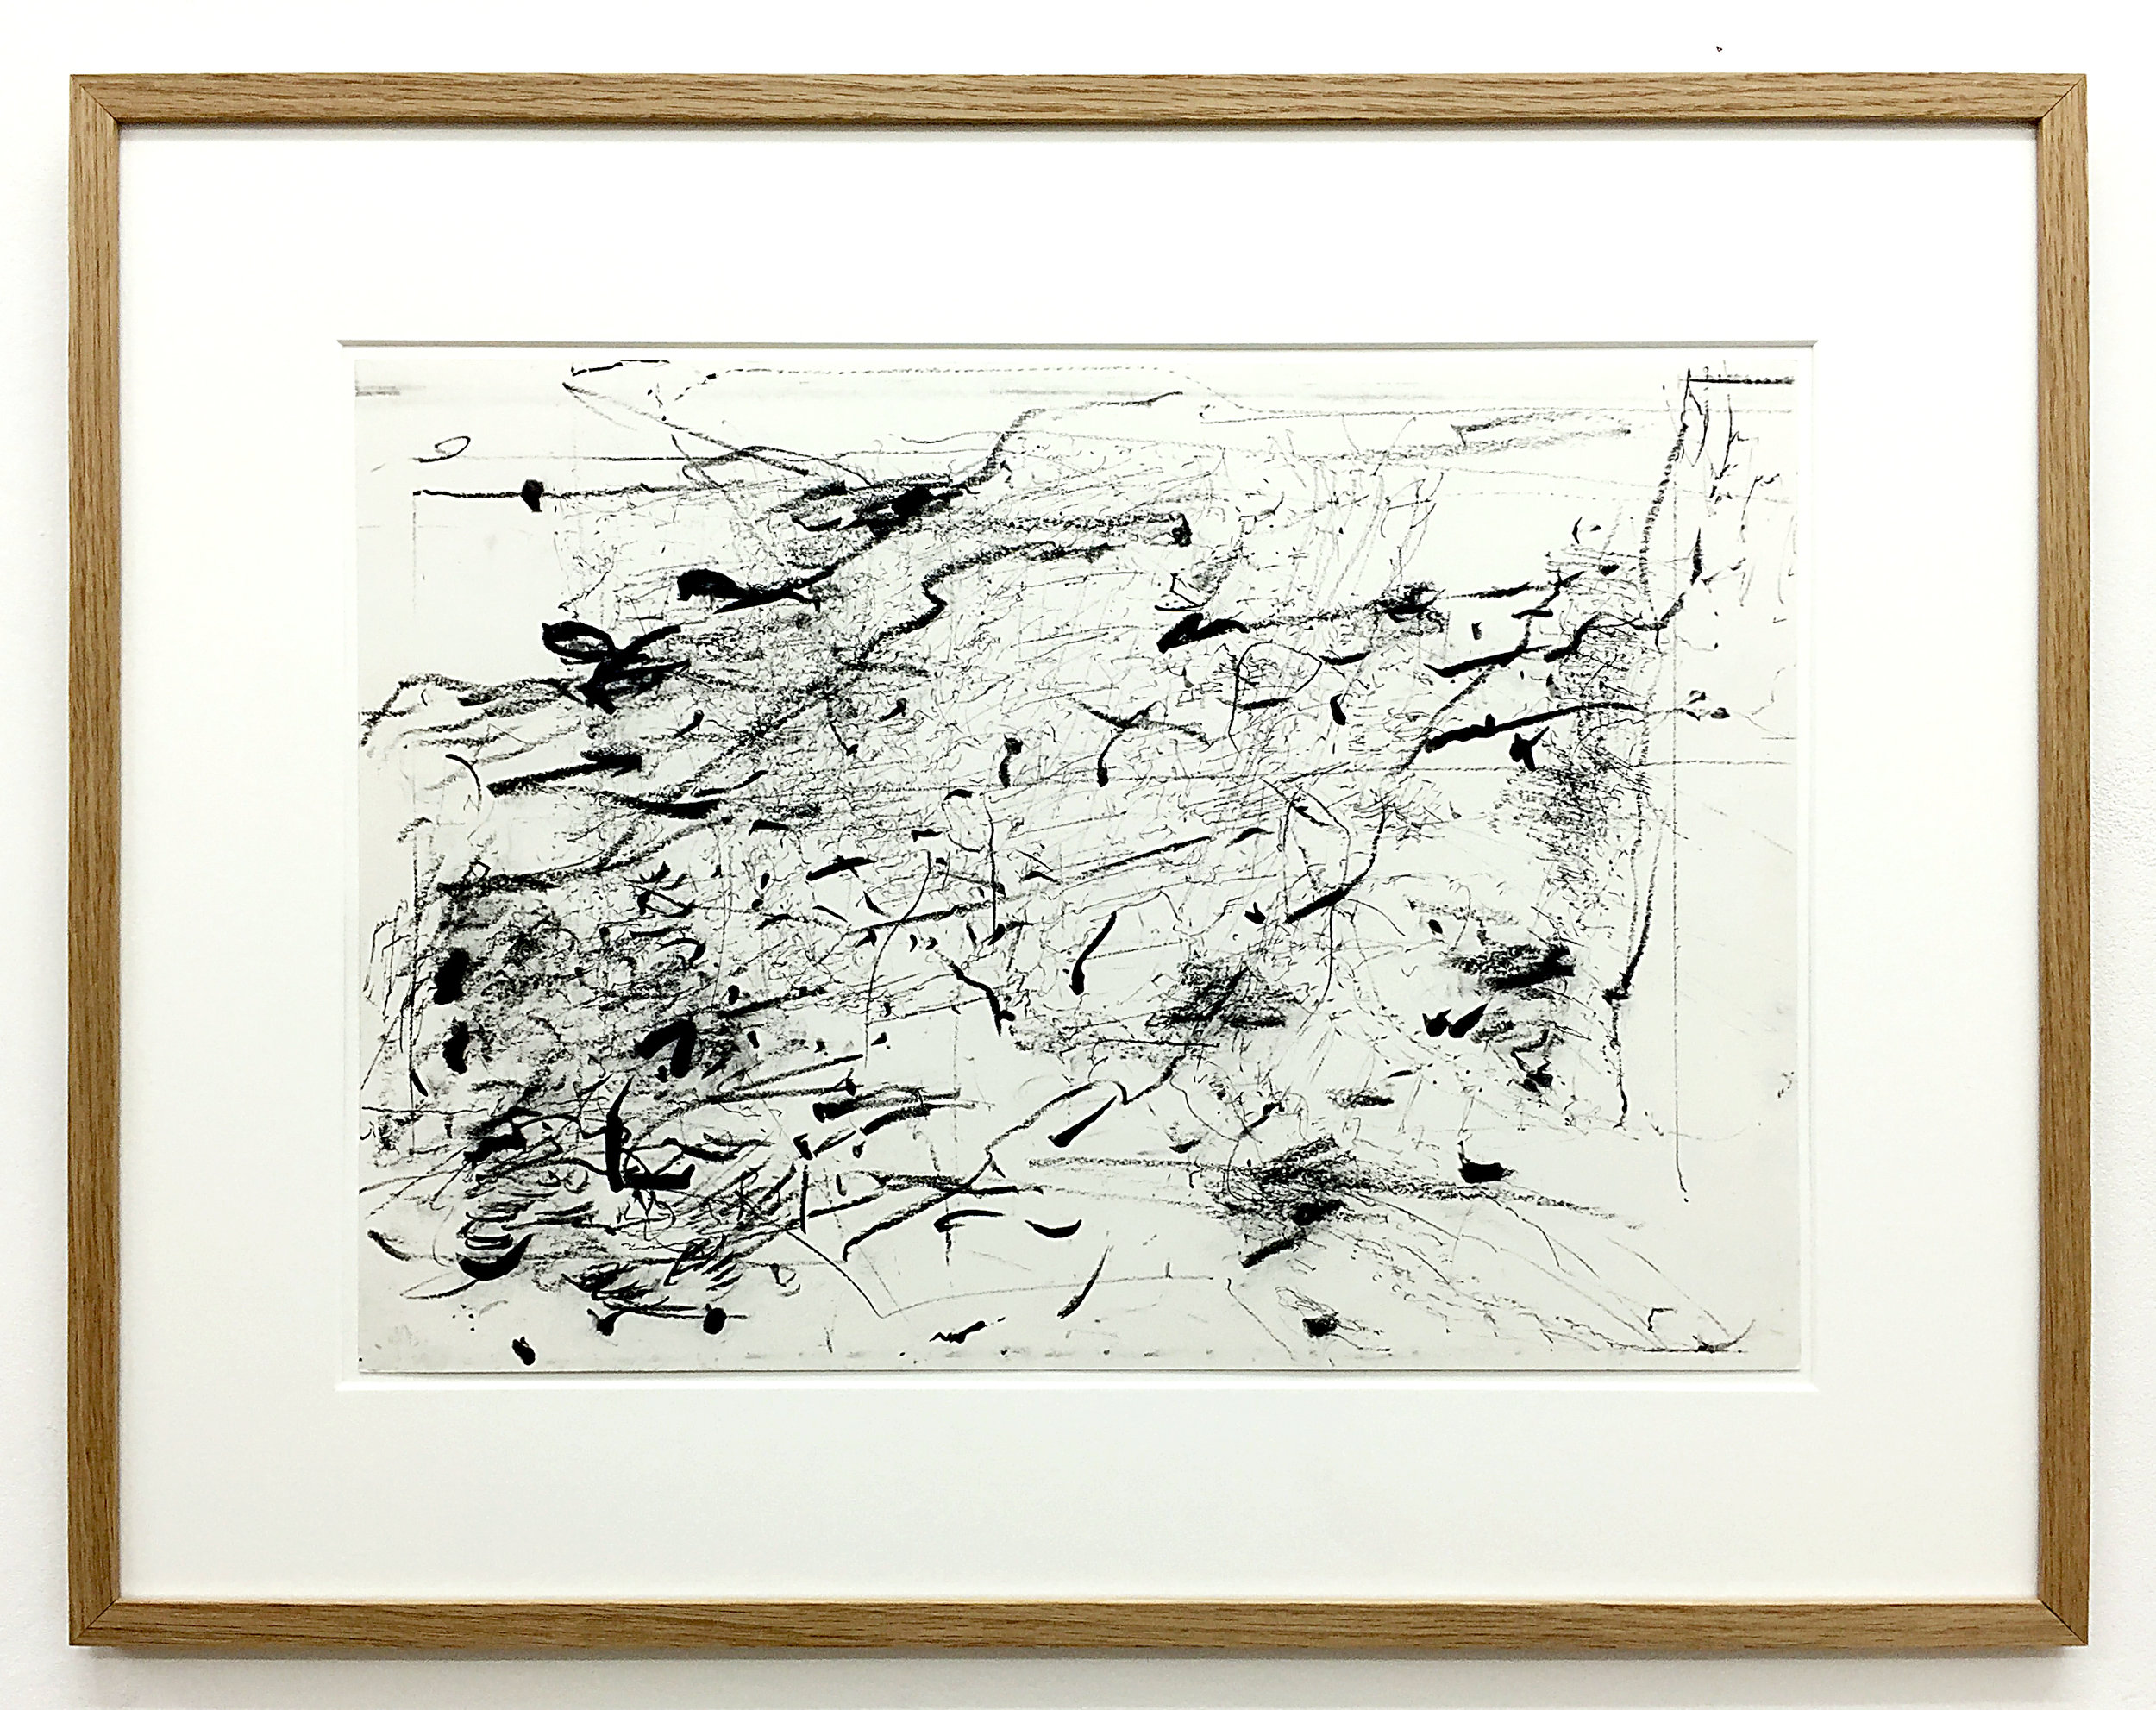 Freigeregelte apparative Zeichnungen (Untitled No.8) , 1990, magnetically manipulated plotter drawing / pencil on paper, 45.5 x 58 cm